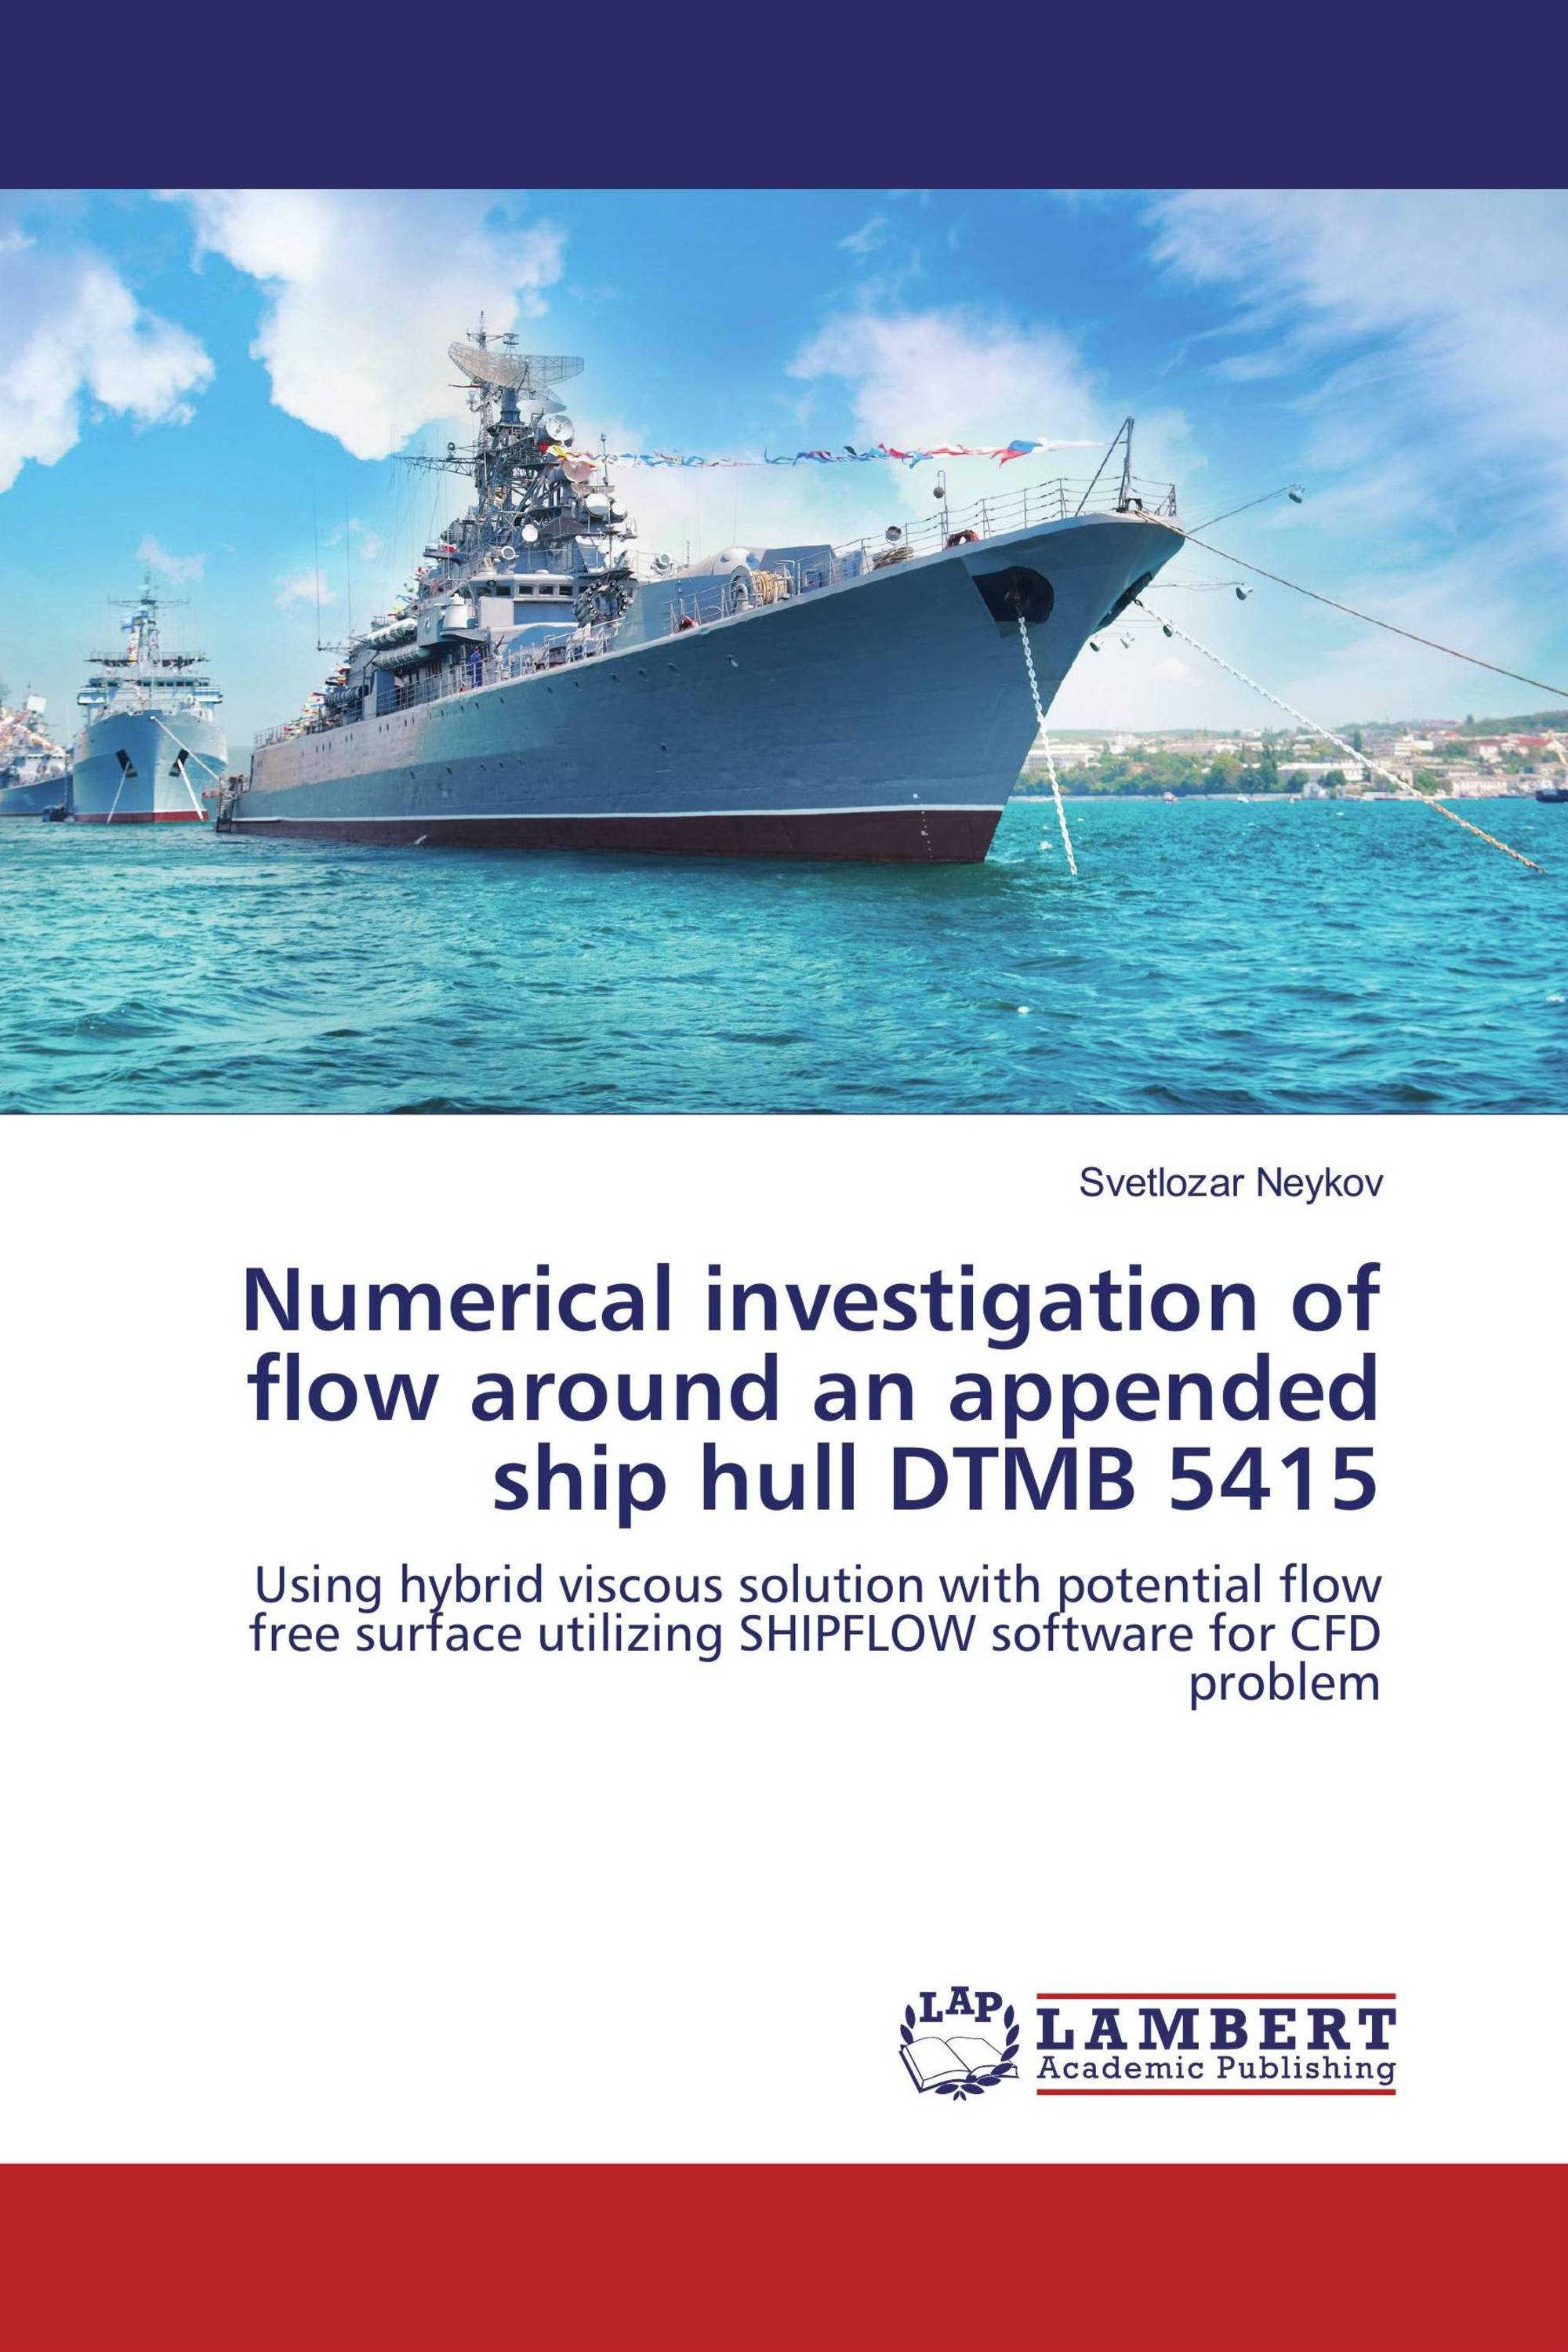 Numerical investigation of flow around an appended ship hull DTMB 5415